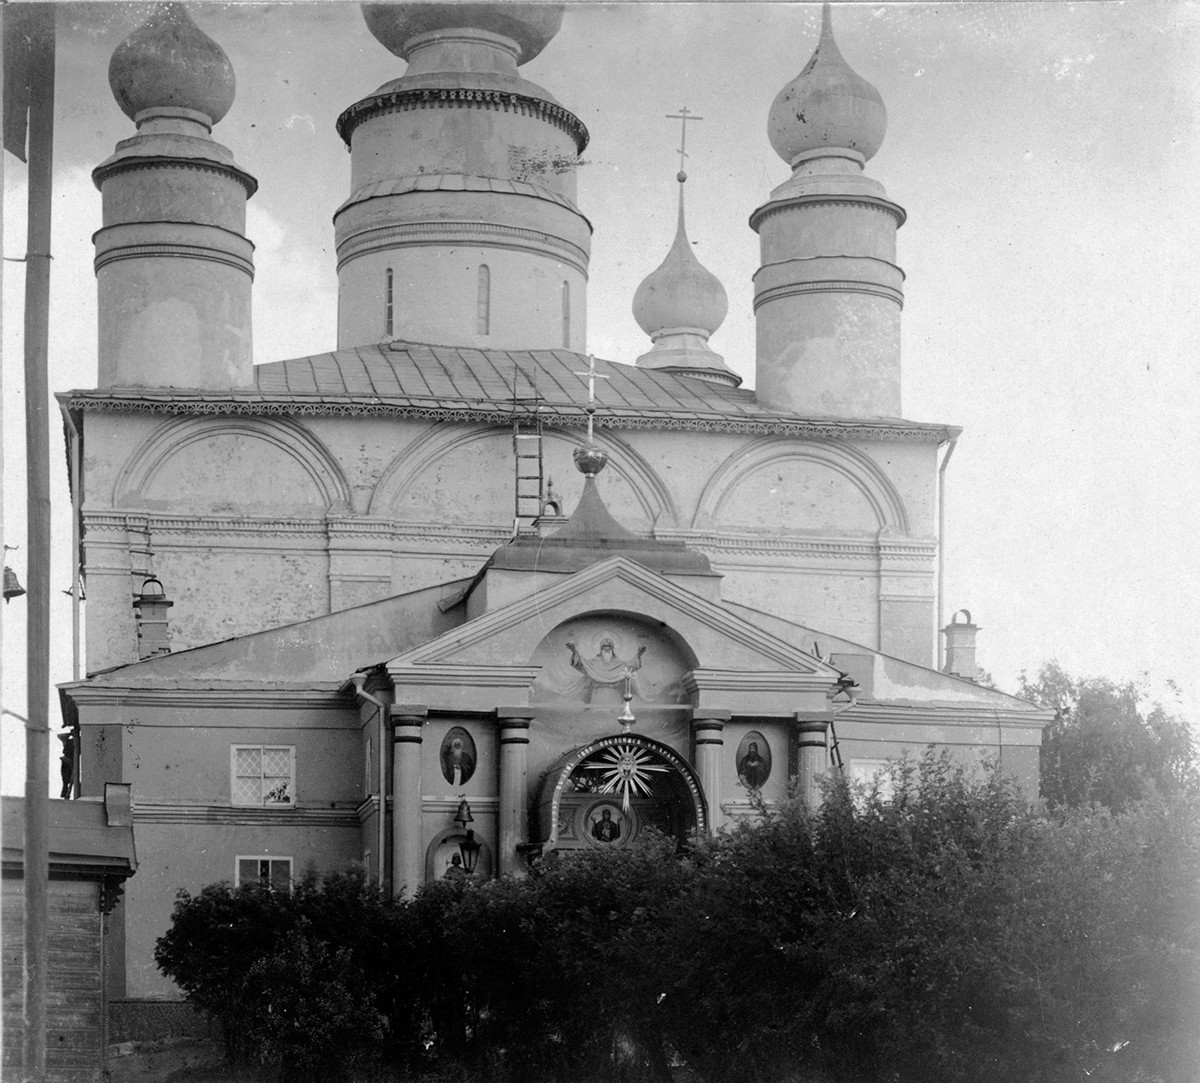 Cathedral of Sts. Boris & Gleb, west view. The flanking decorative wooden cupolas were placed on the roof in 1836 and removed in 1925 by the architect and preservation specialist Piotr Baranovsky. Summer 1911